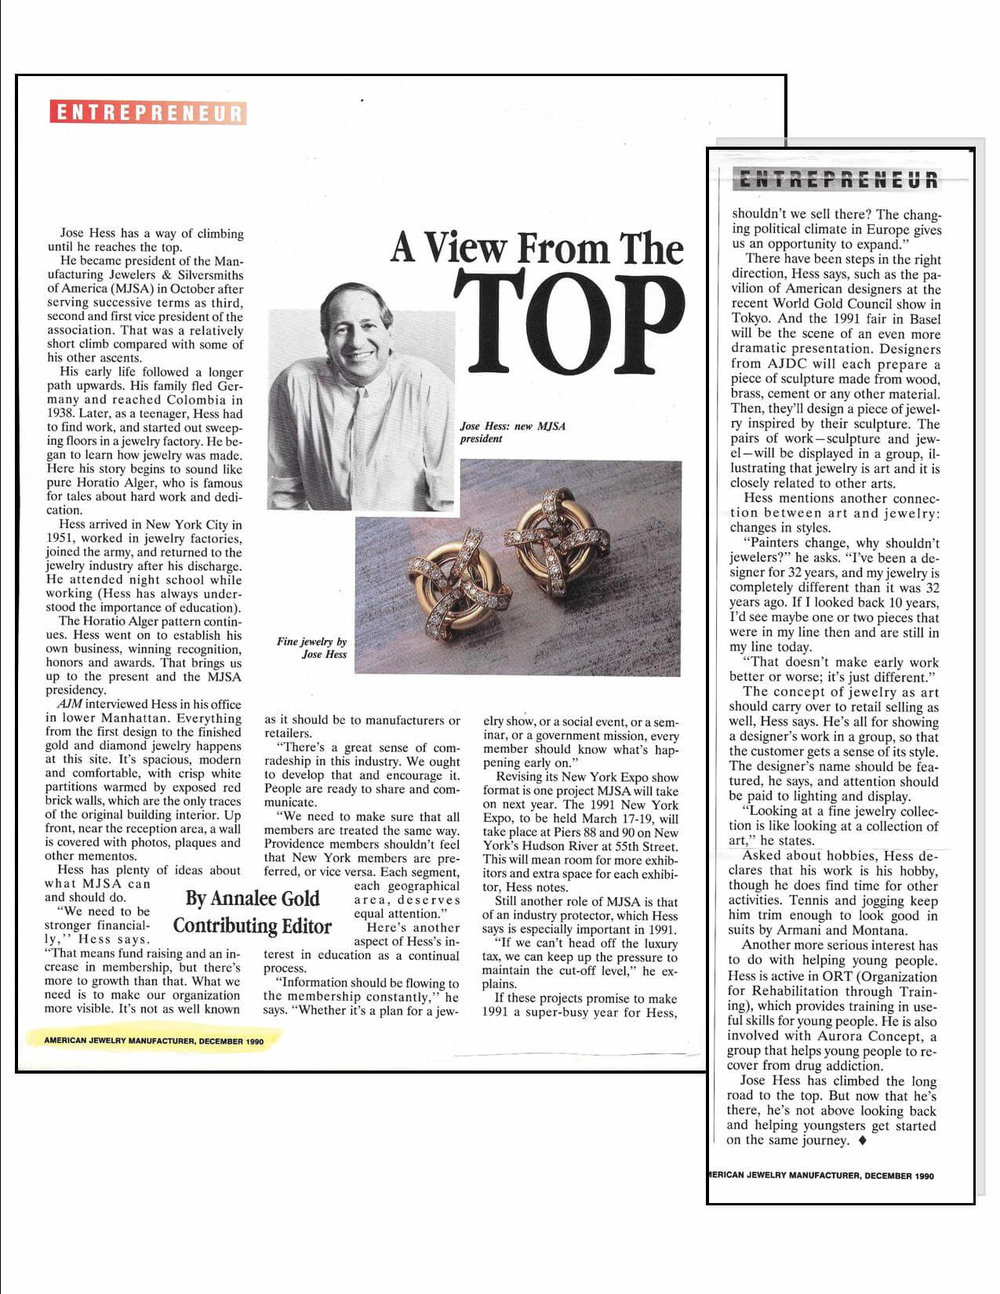 Jose Hess  American Jewelry Manuf December 1990 Article.jpg